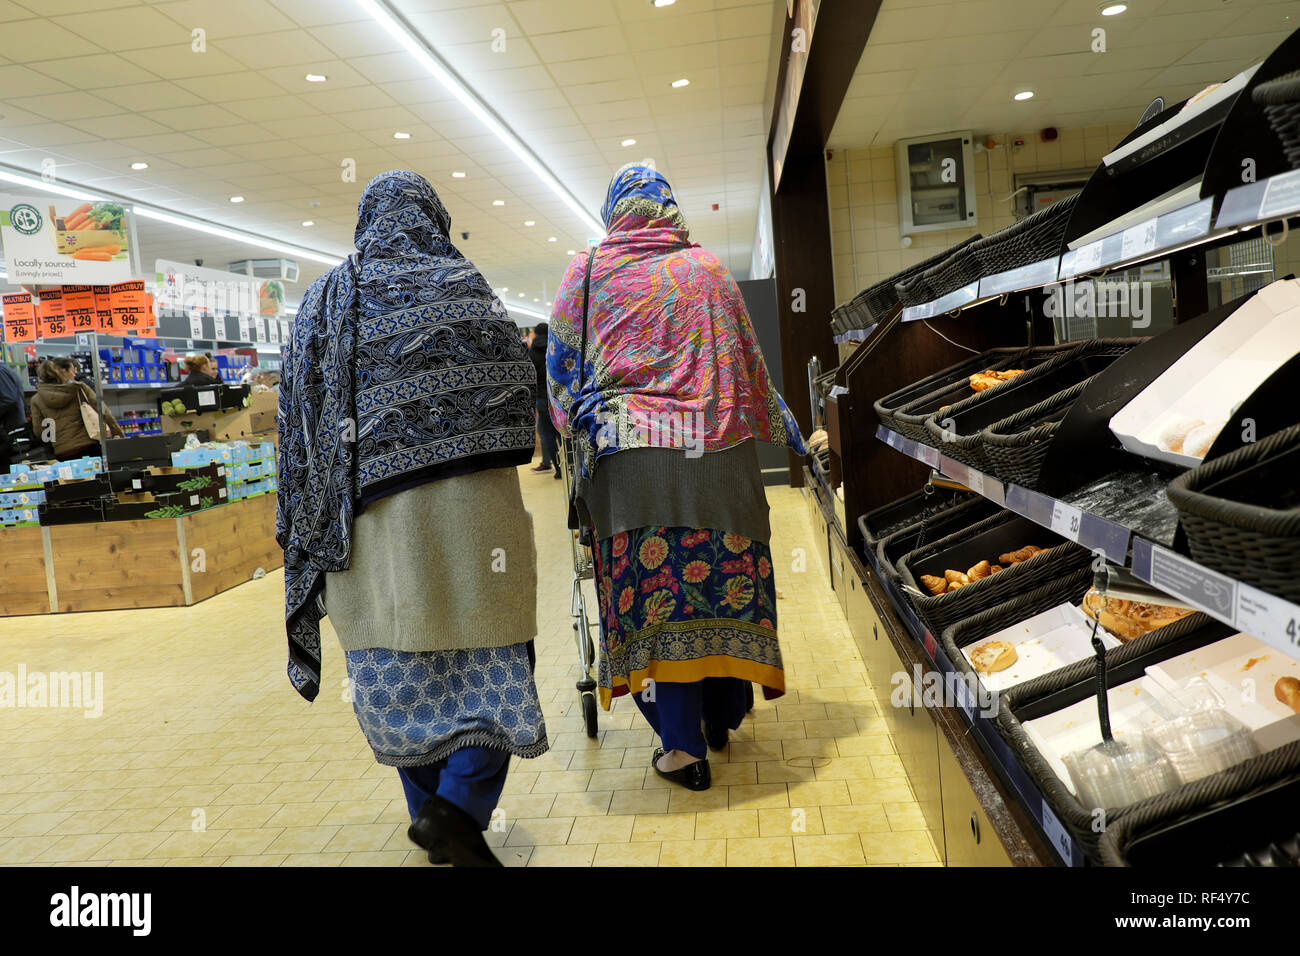 Lidl supermarket shoppers two elderly old women wearing headscarf headscarves shopping together walking past empty bakery shelves in UK  KATHY DEWITT - Stock Image